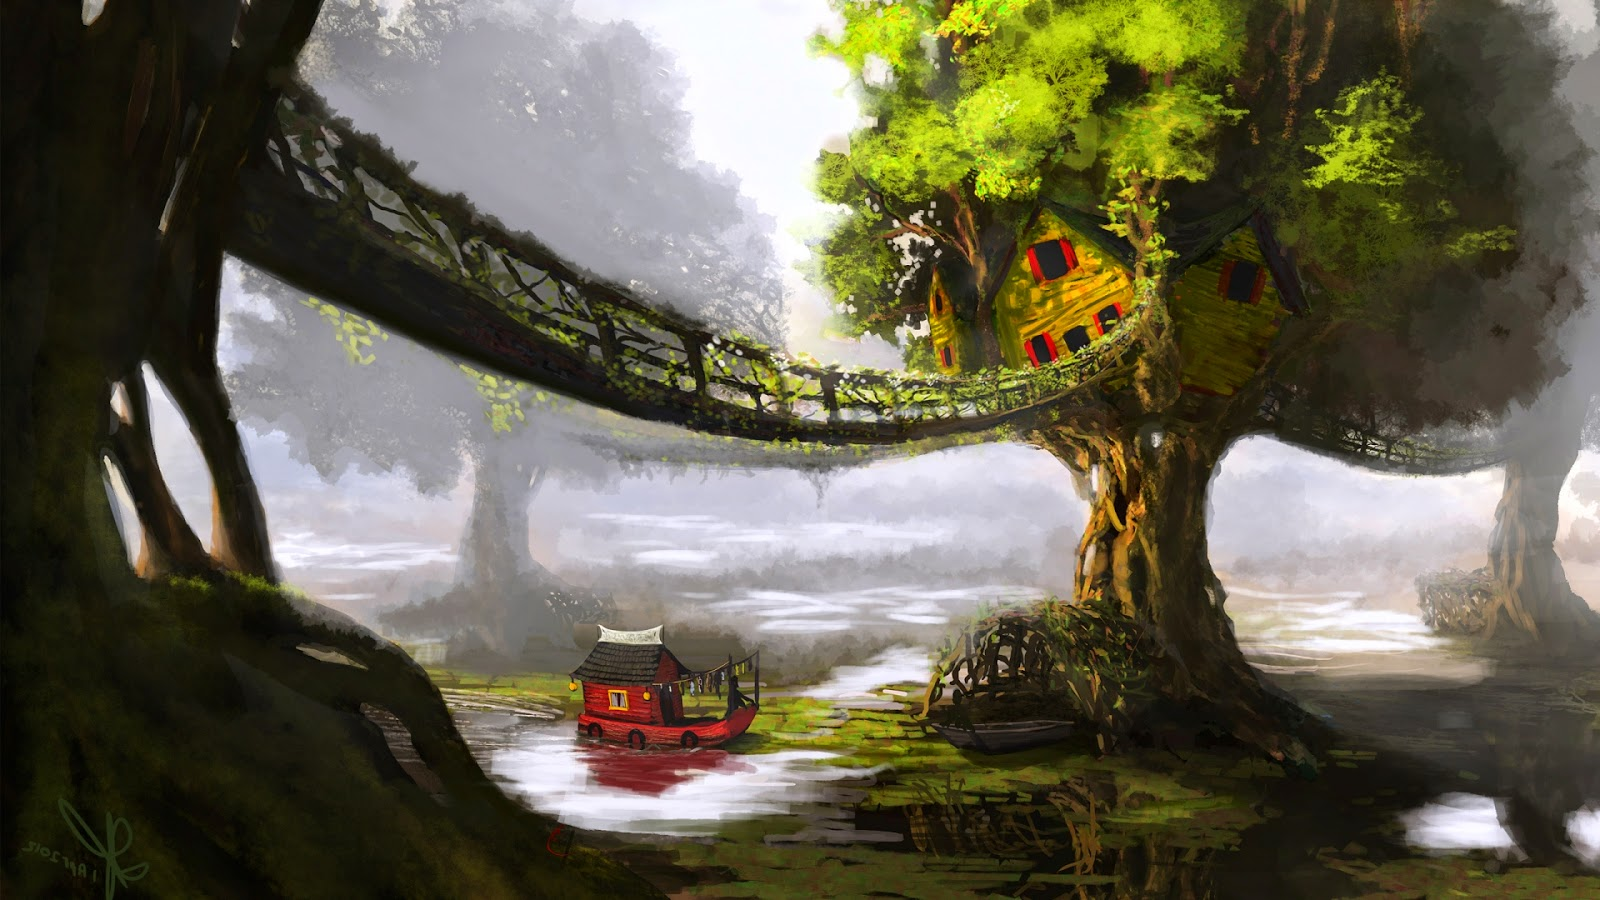 small-cute-tree-house-image-with-water-stream.jpg